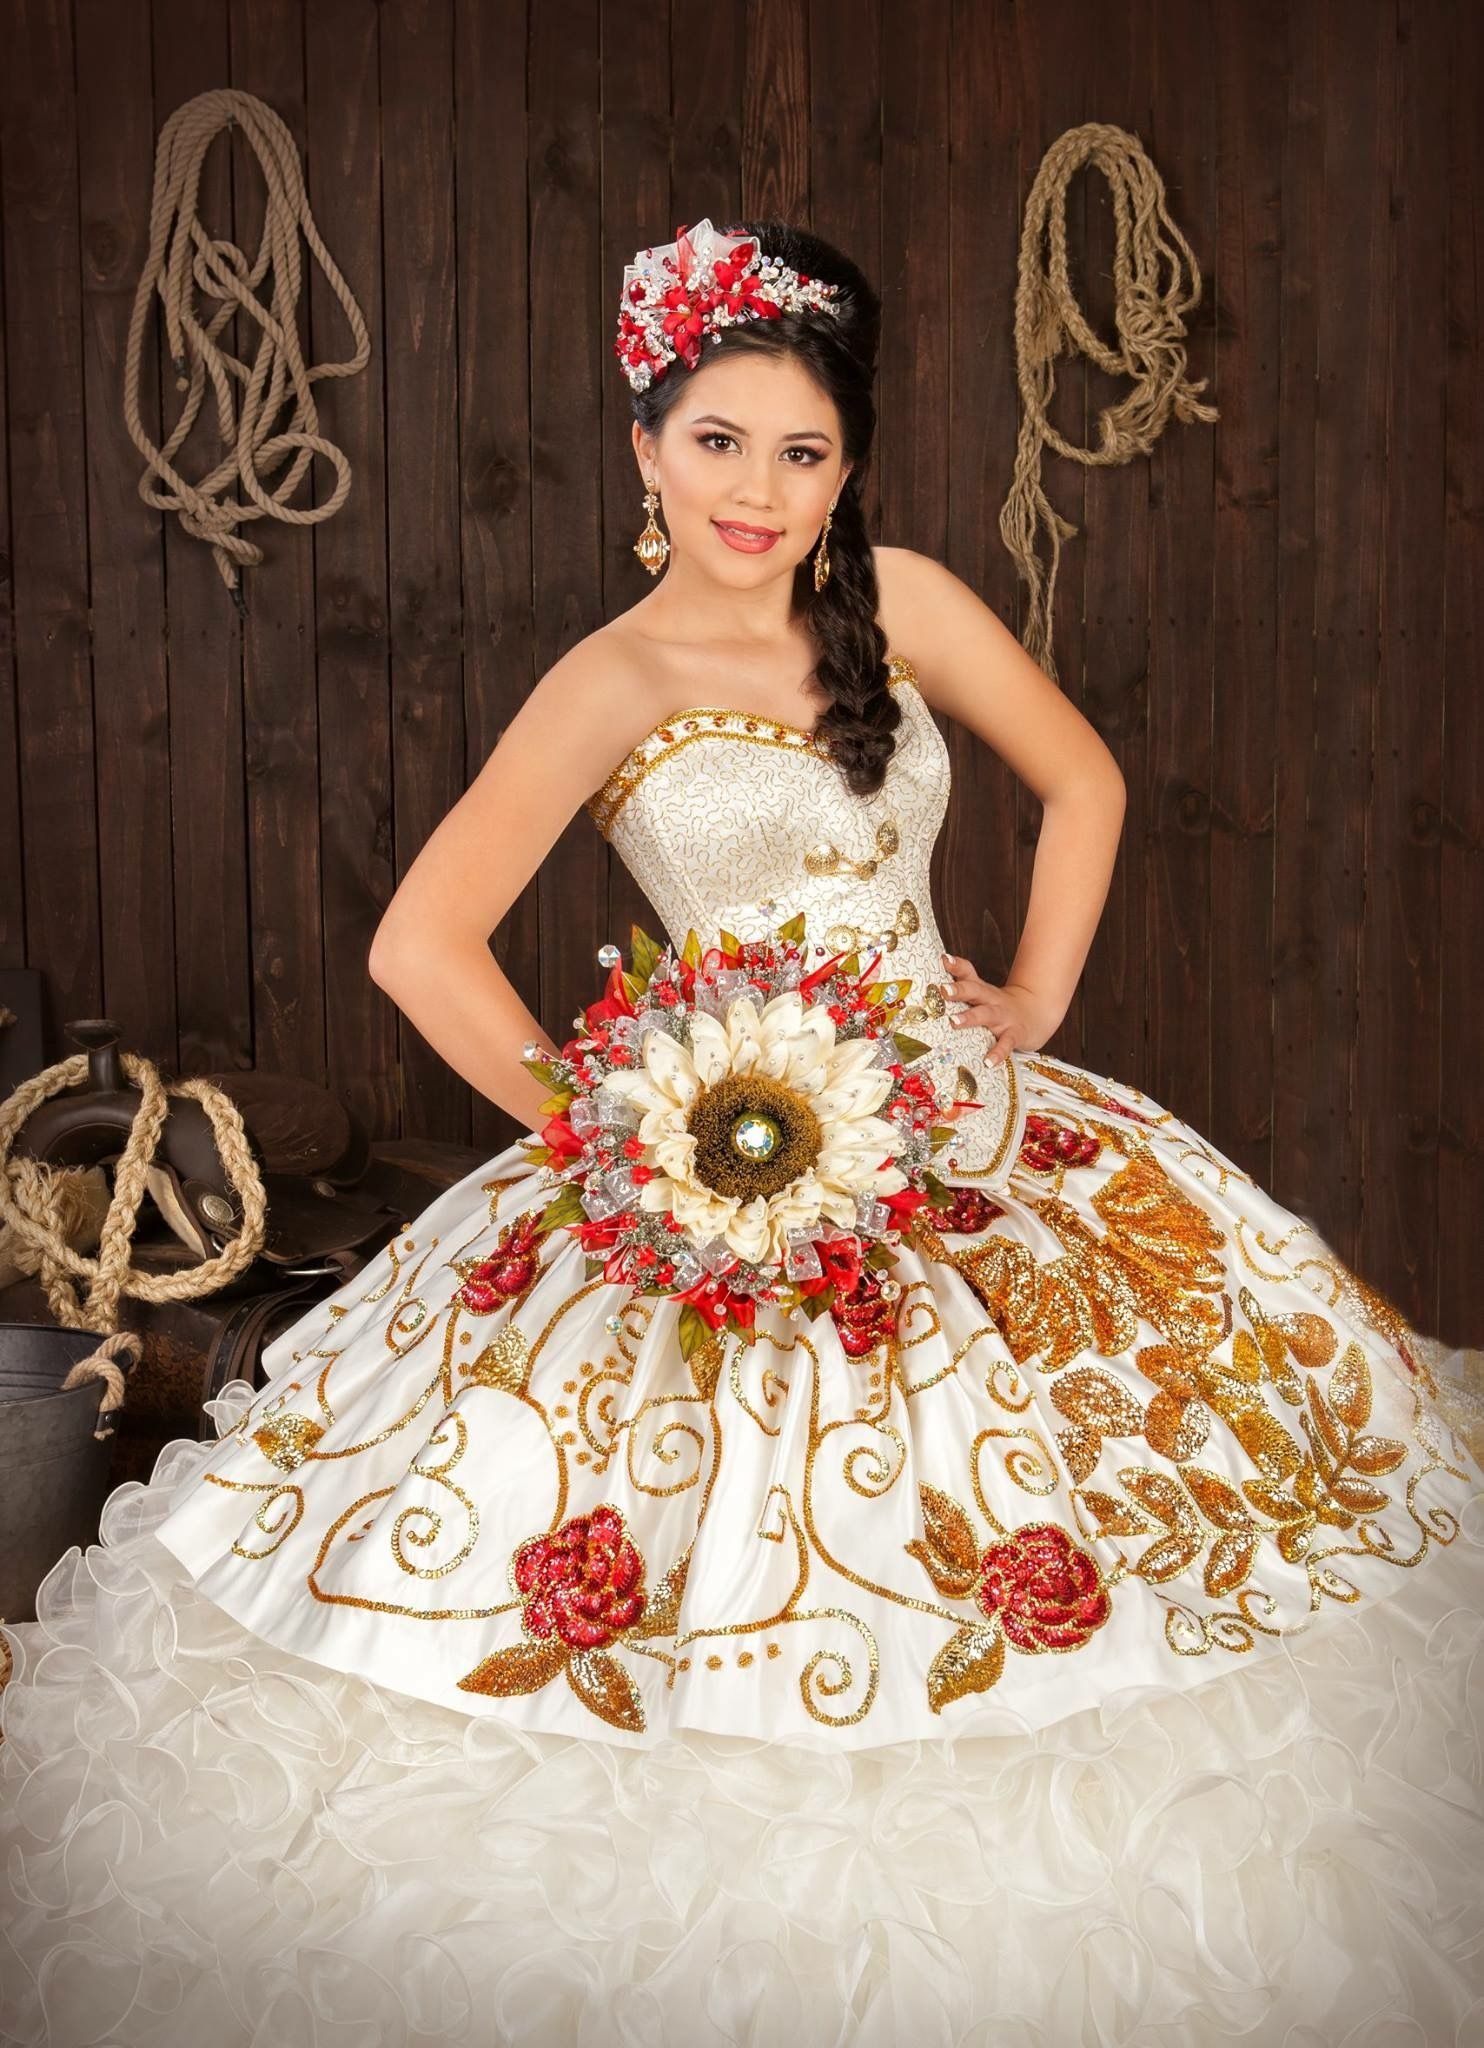 c92ed5daa1e Image result for champagne quinceanera dress charro